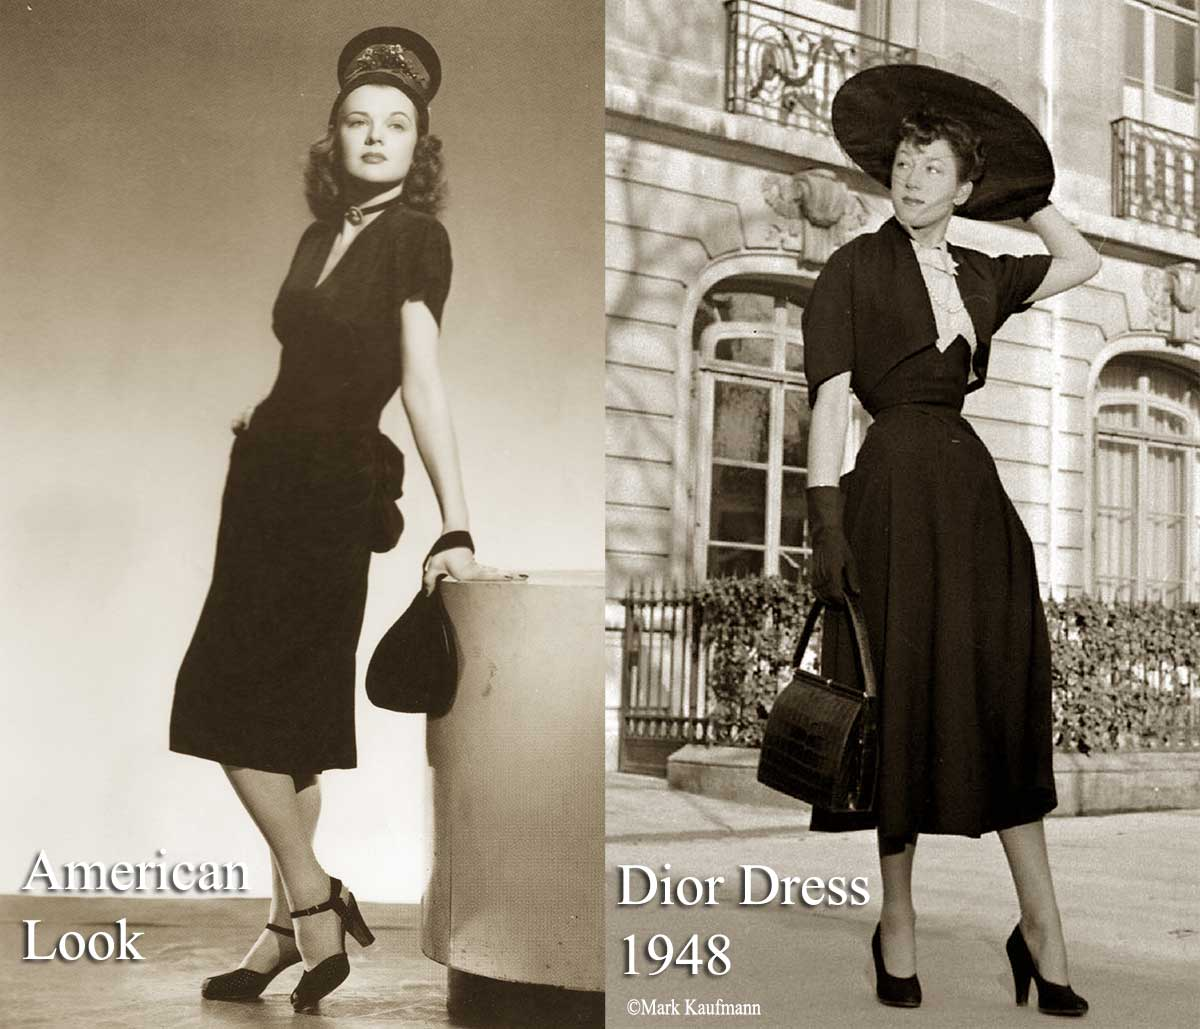 1940s Fashion   The American Look vs Dior 1947   Glamour Daze 1940s post war fashion   America vs Paris